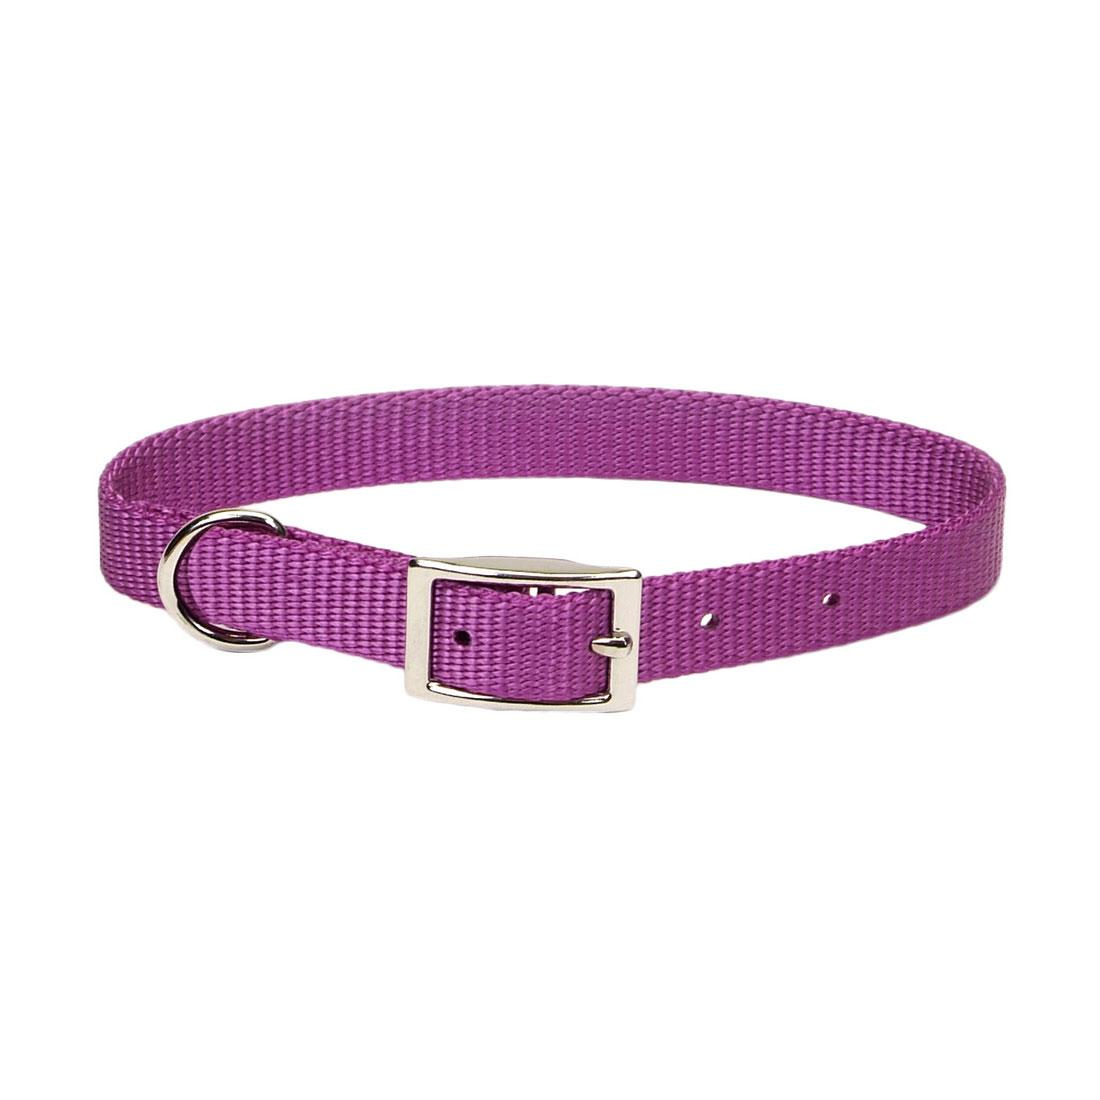 Coastal Single-Ply Dog Collar, Orchid, 5/8-in x 14-in